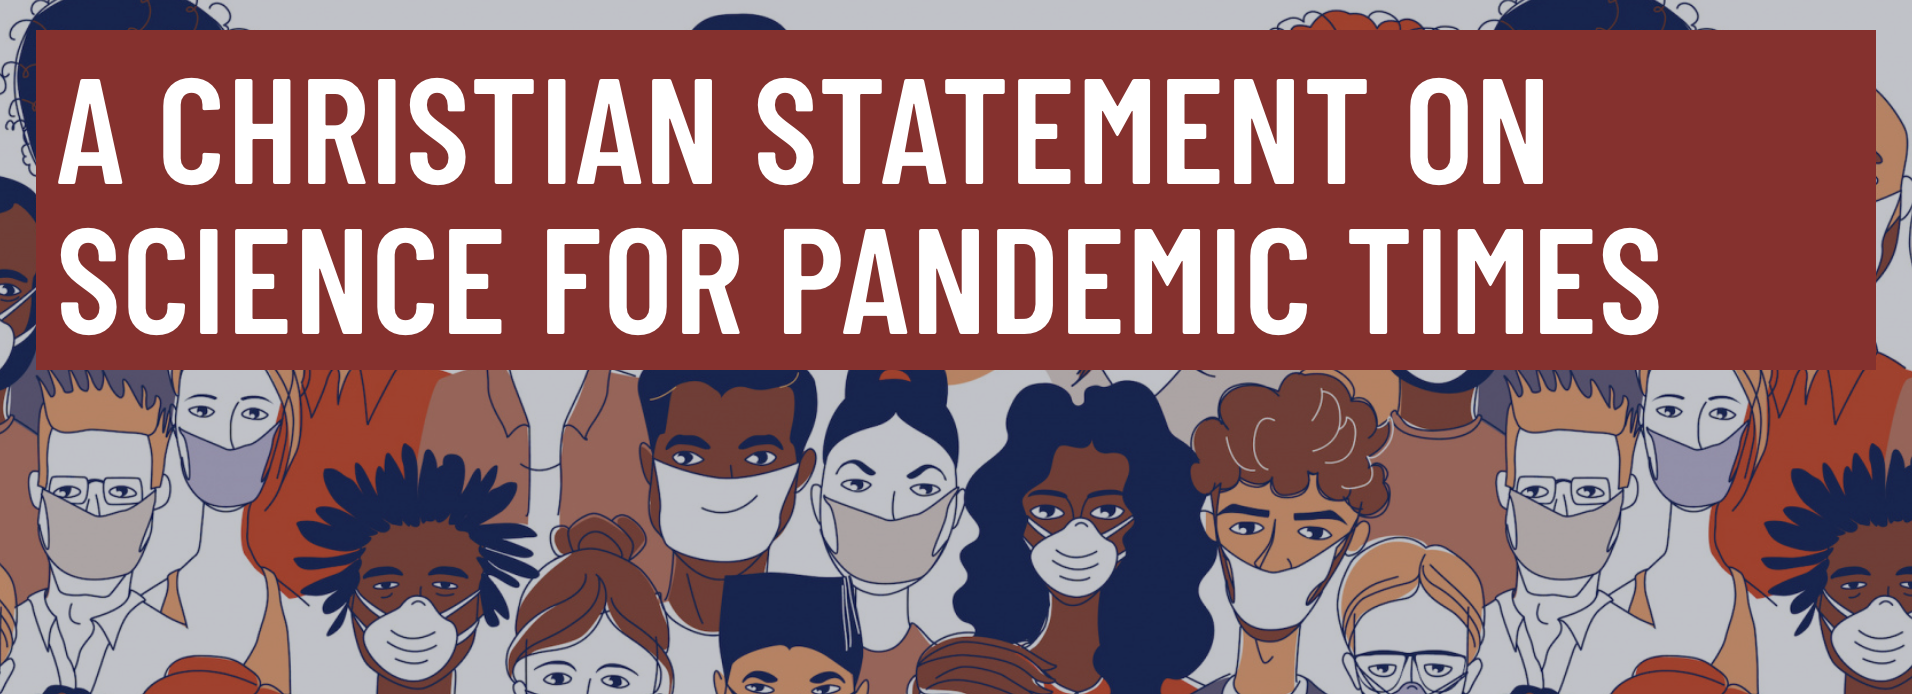 A Christian Statement on Science in Pandemic Times